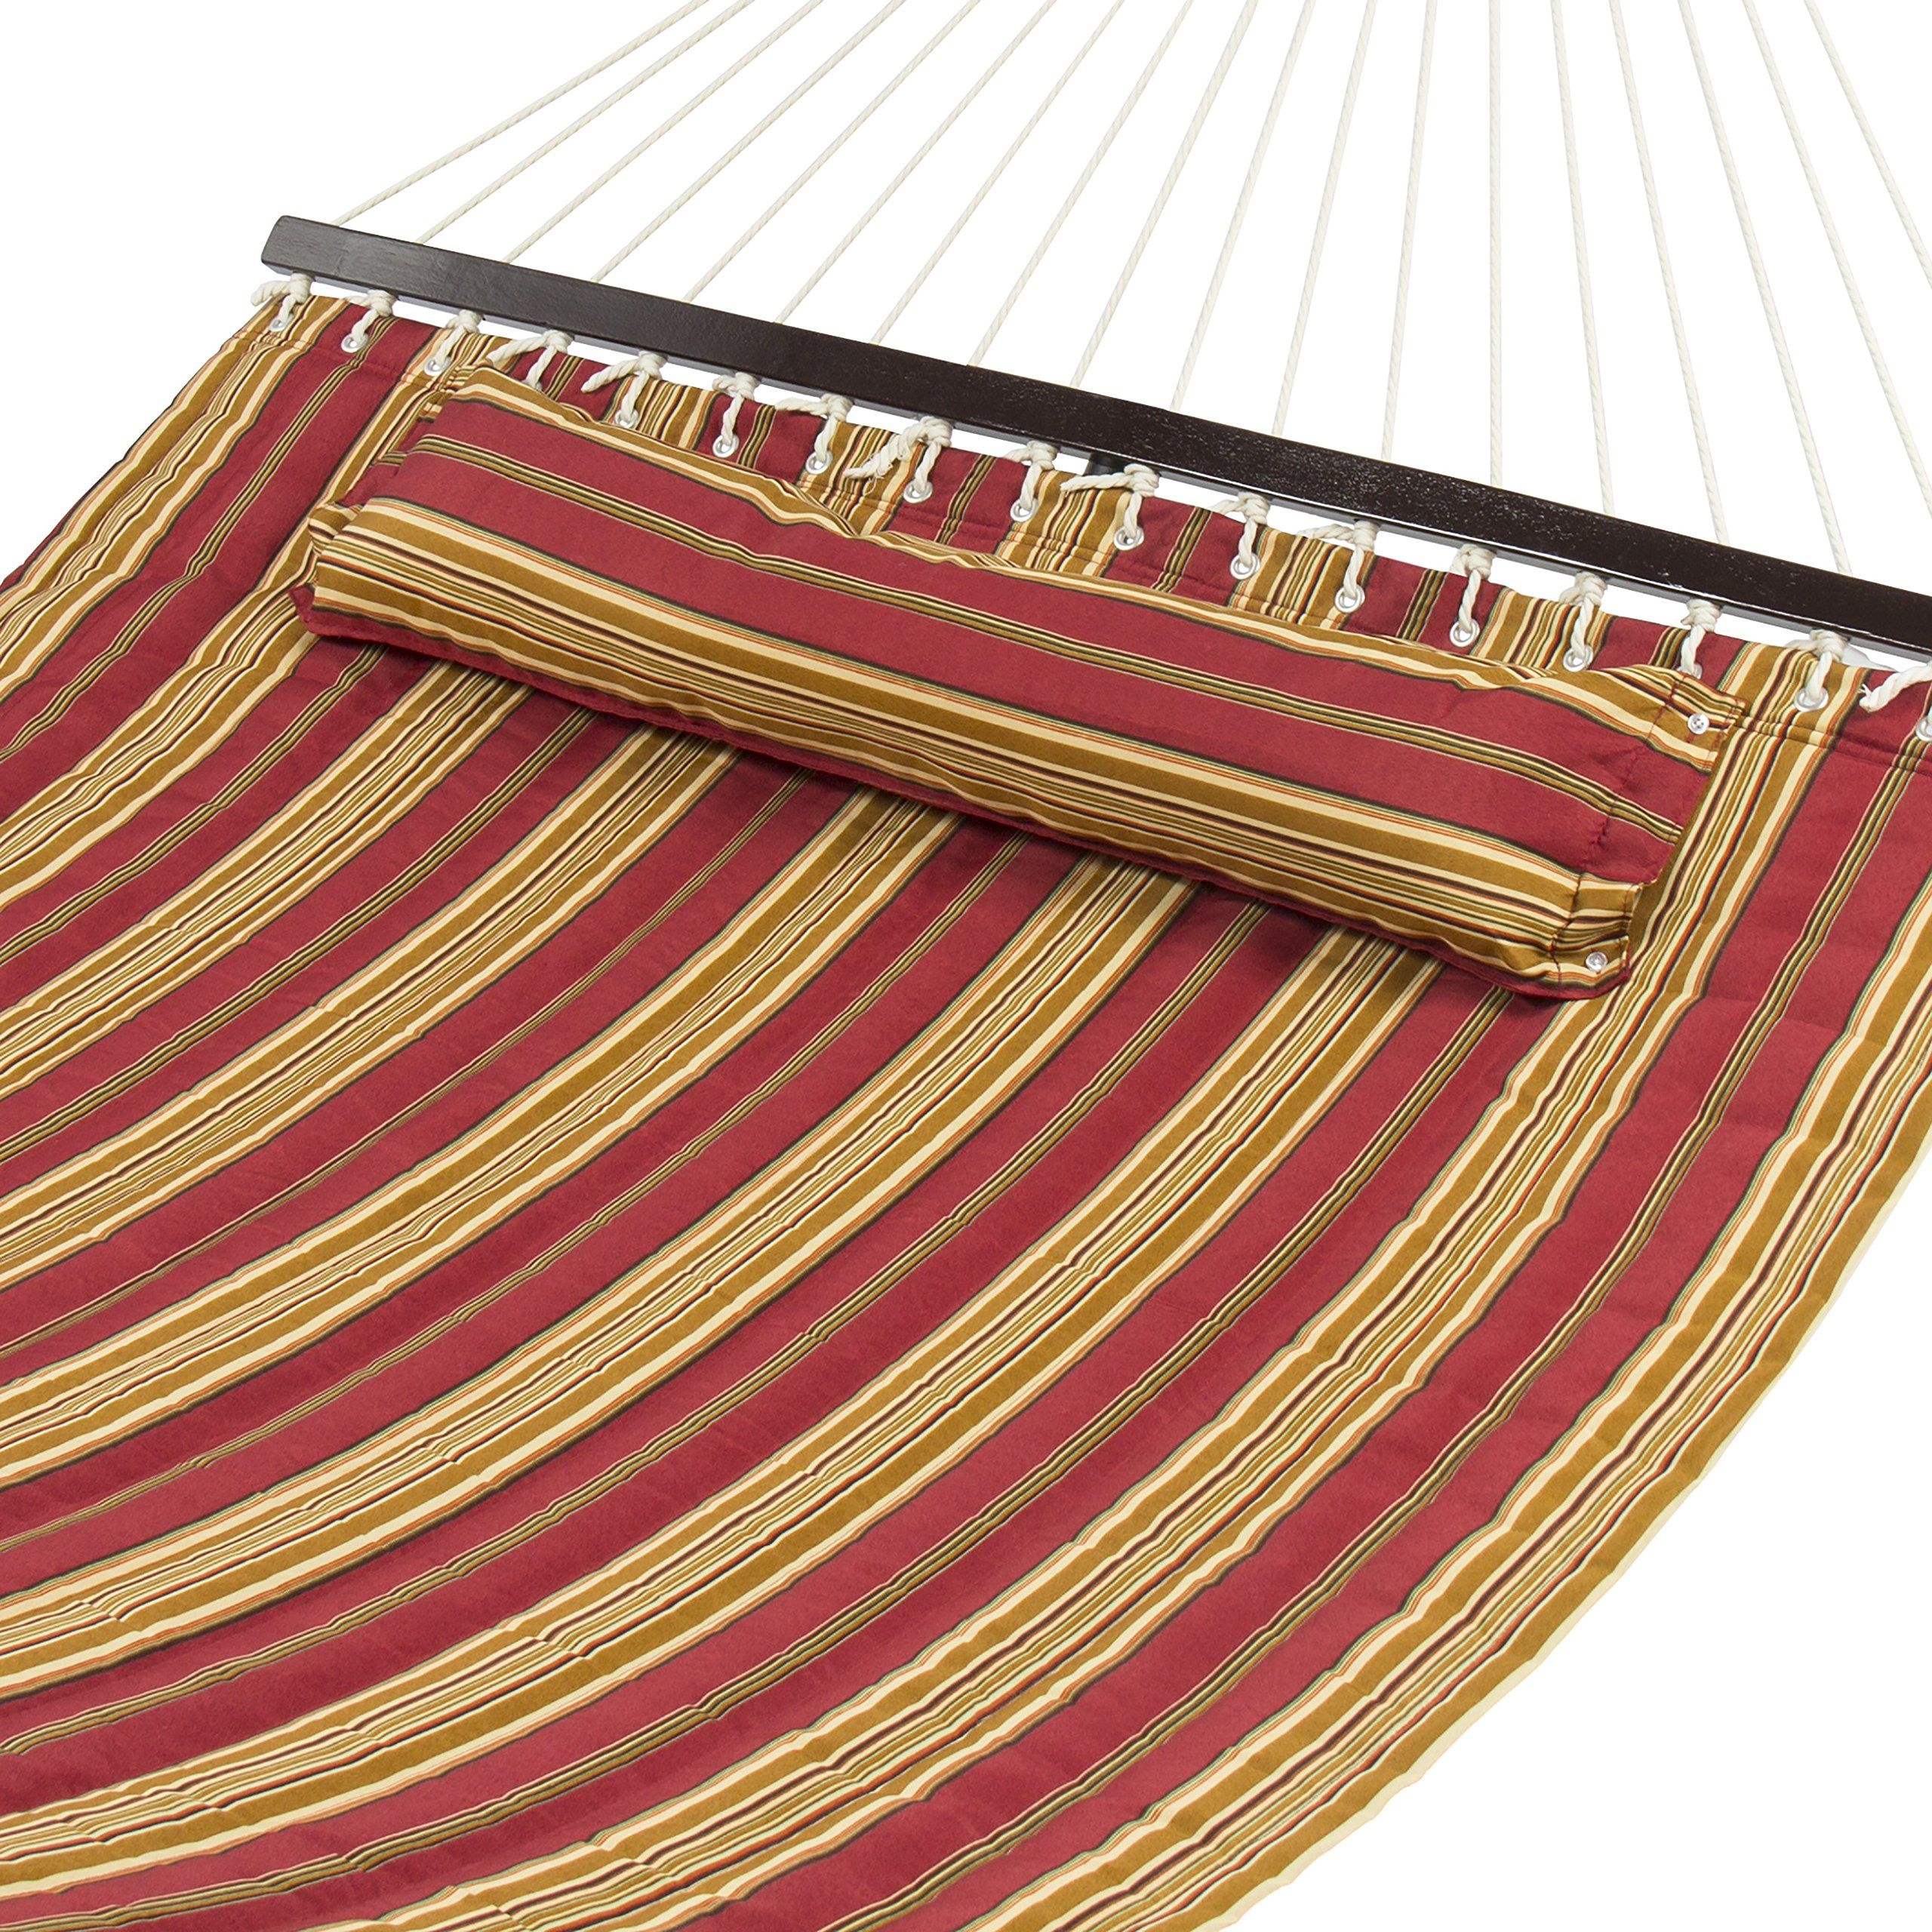 Amazon.com: Best Choice Products® Hammock Quilted Fabric With Pillow Double Size Spreader Bar Heavy Duty Stylish: Patio, Lawn & Garden